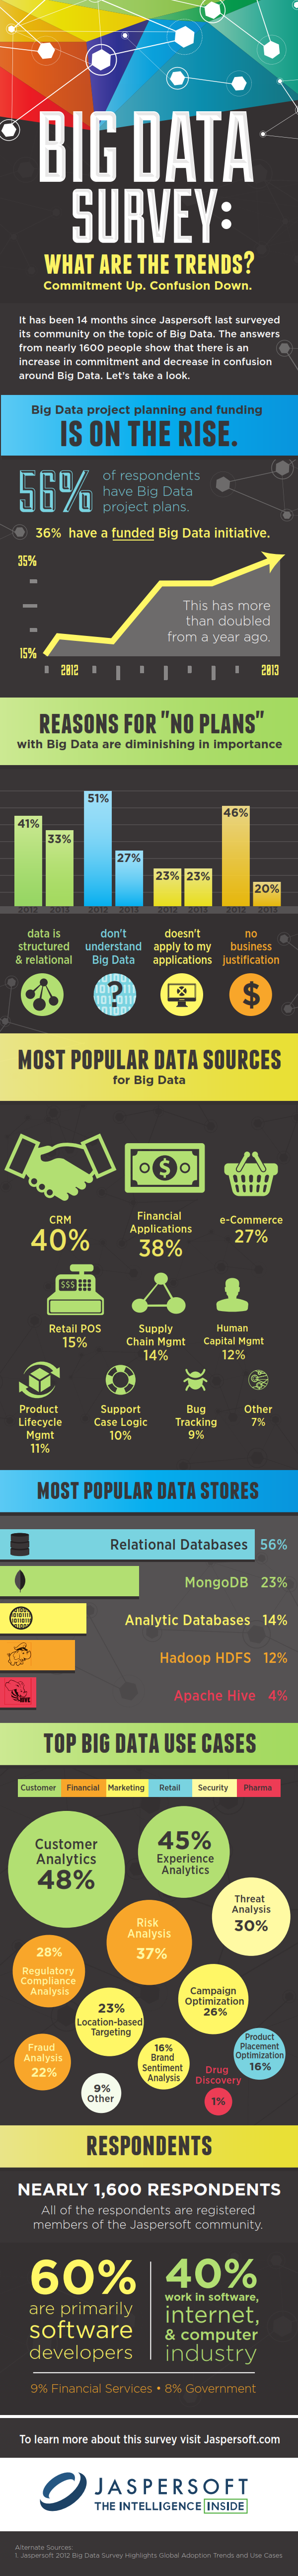 Big-Data-Survey-Infographic-FINAL_001